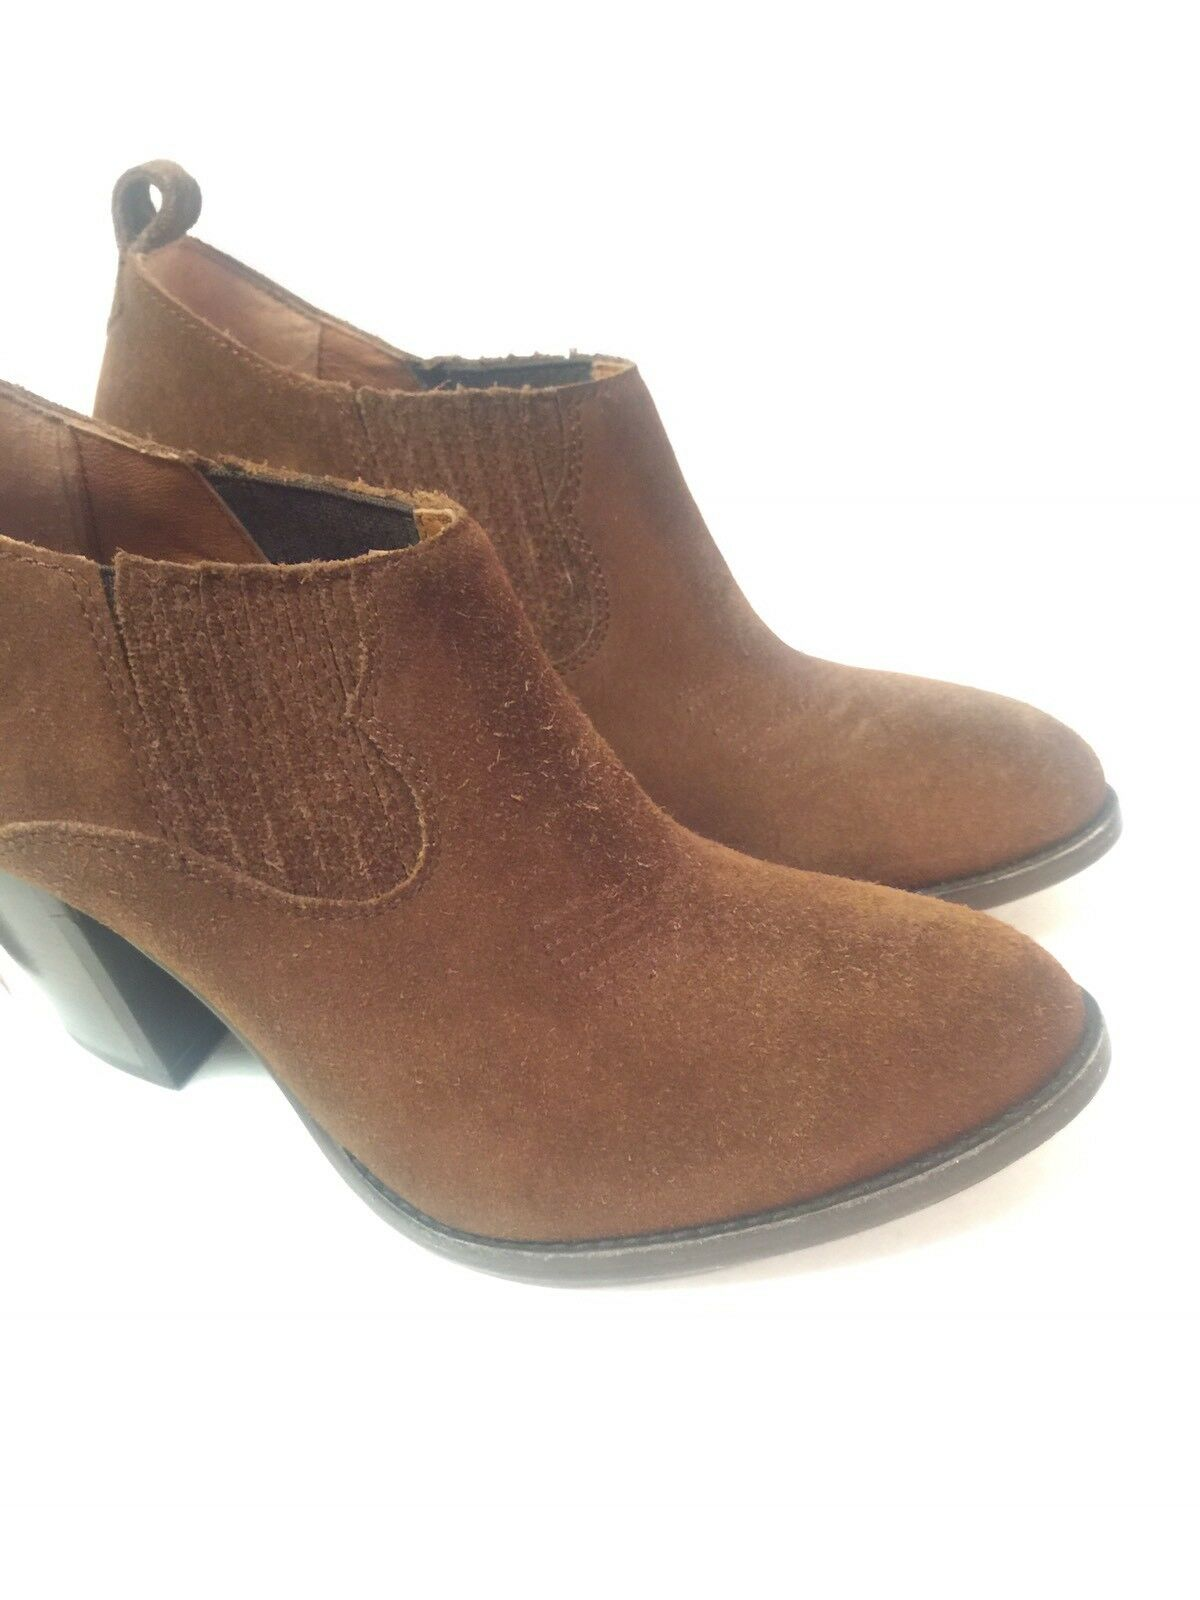 FRYE Ilana Shootie Wood Brown Leather Leather Leather Suede Boots Slip On Ankle Booties W6.5 NEW dbe85c